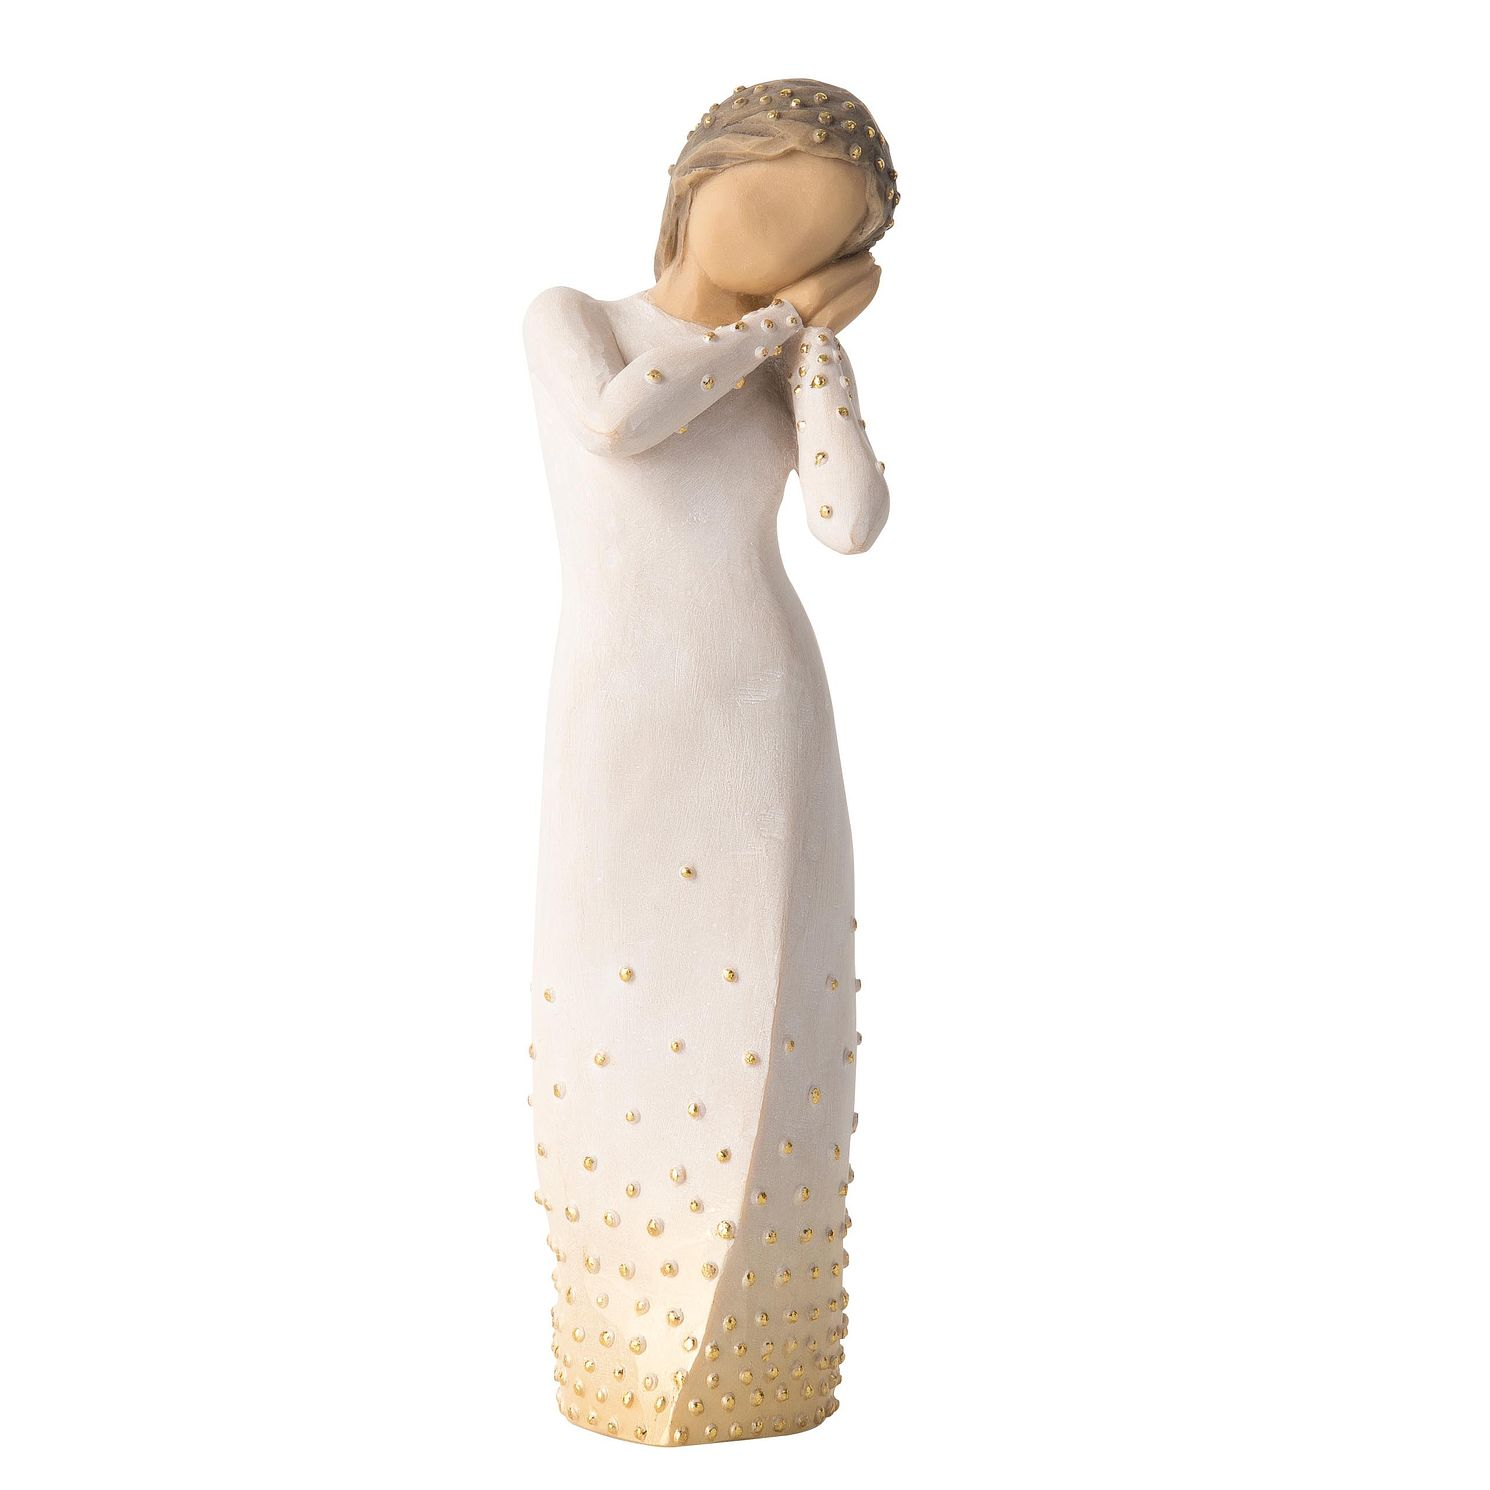 Willow Tree Wishing Figurine - Product number 2950499